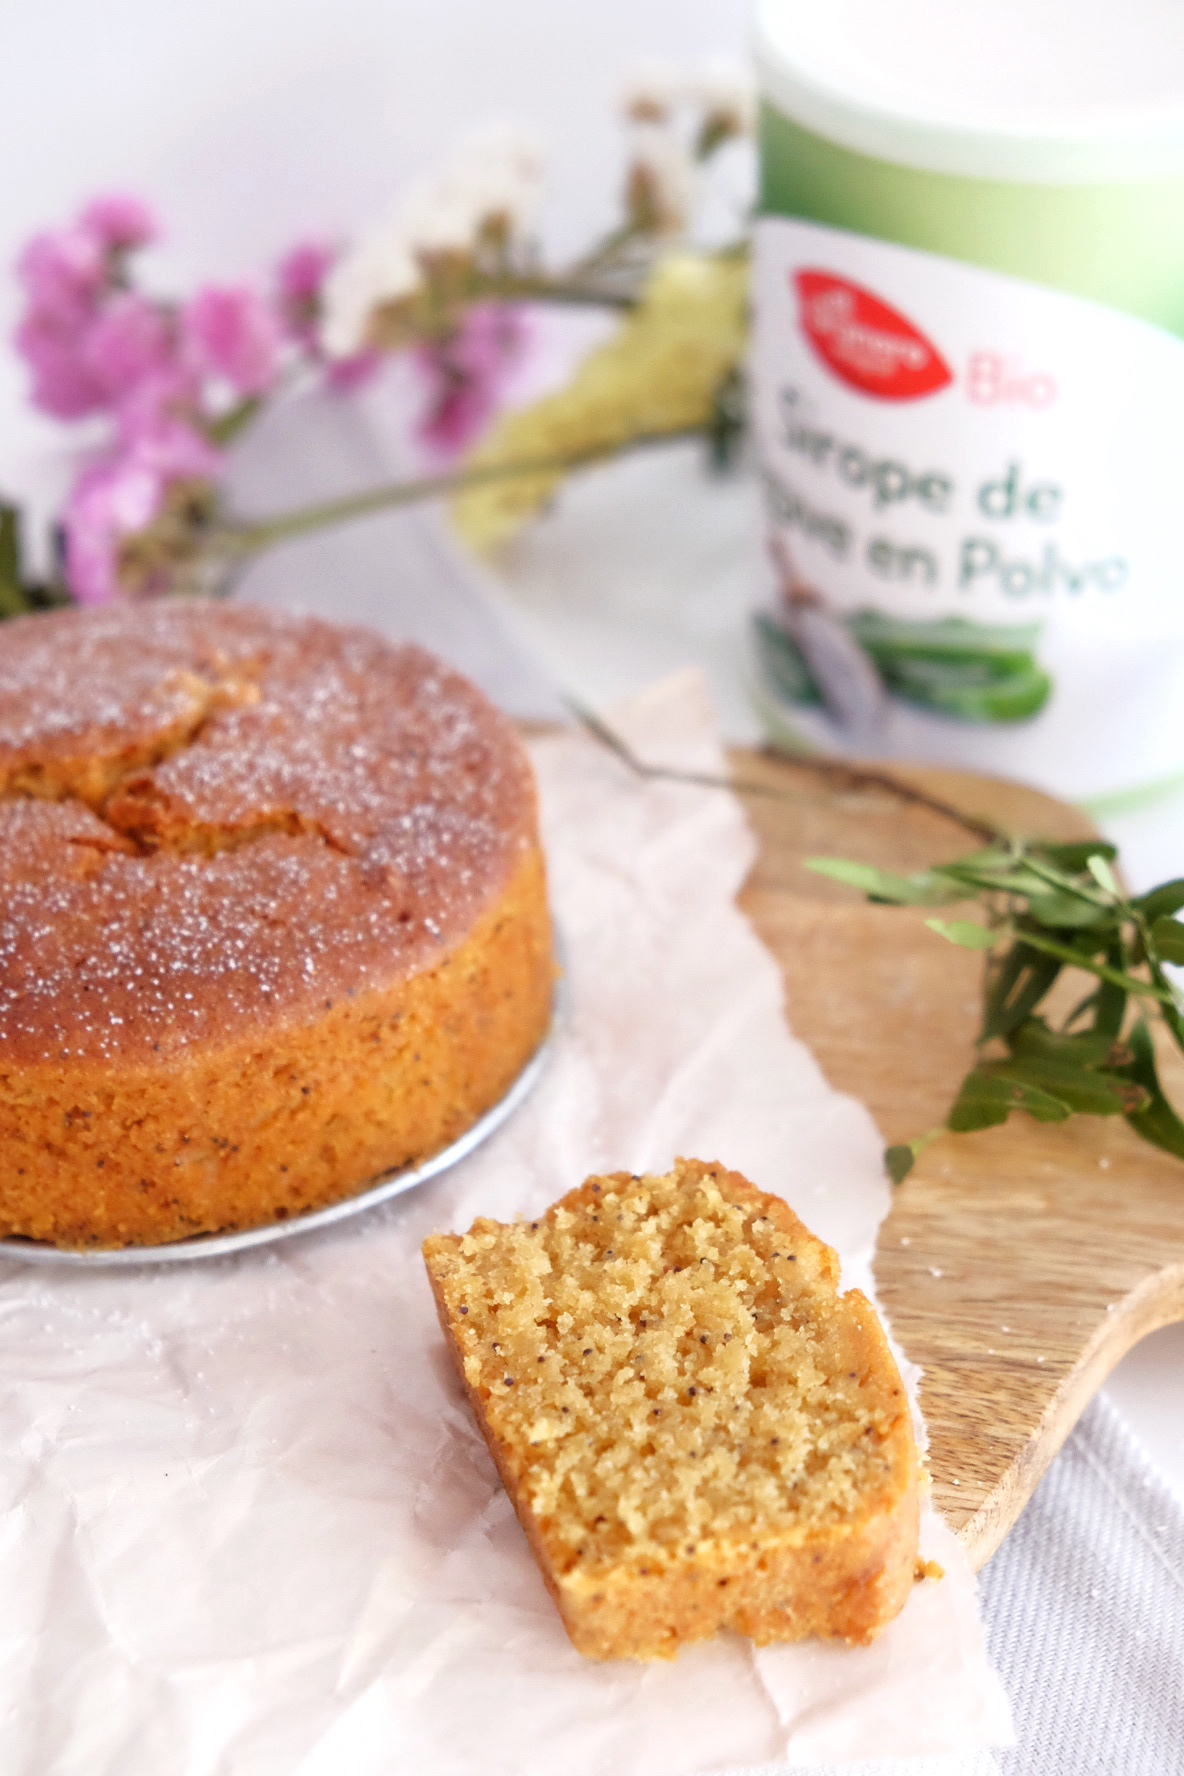 GLUTEN-FREE LEMON CAKE WITH POPPY SEEDS